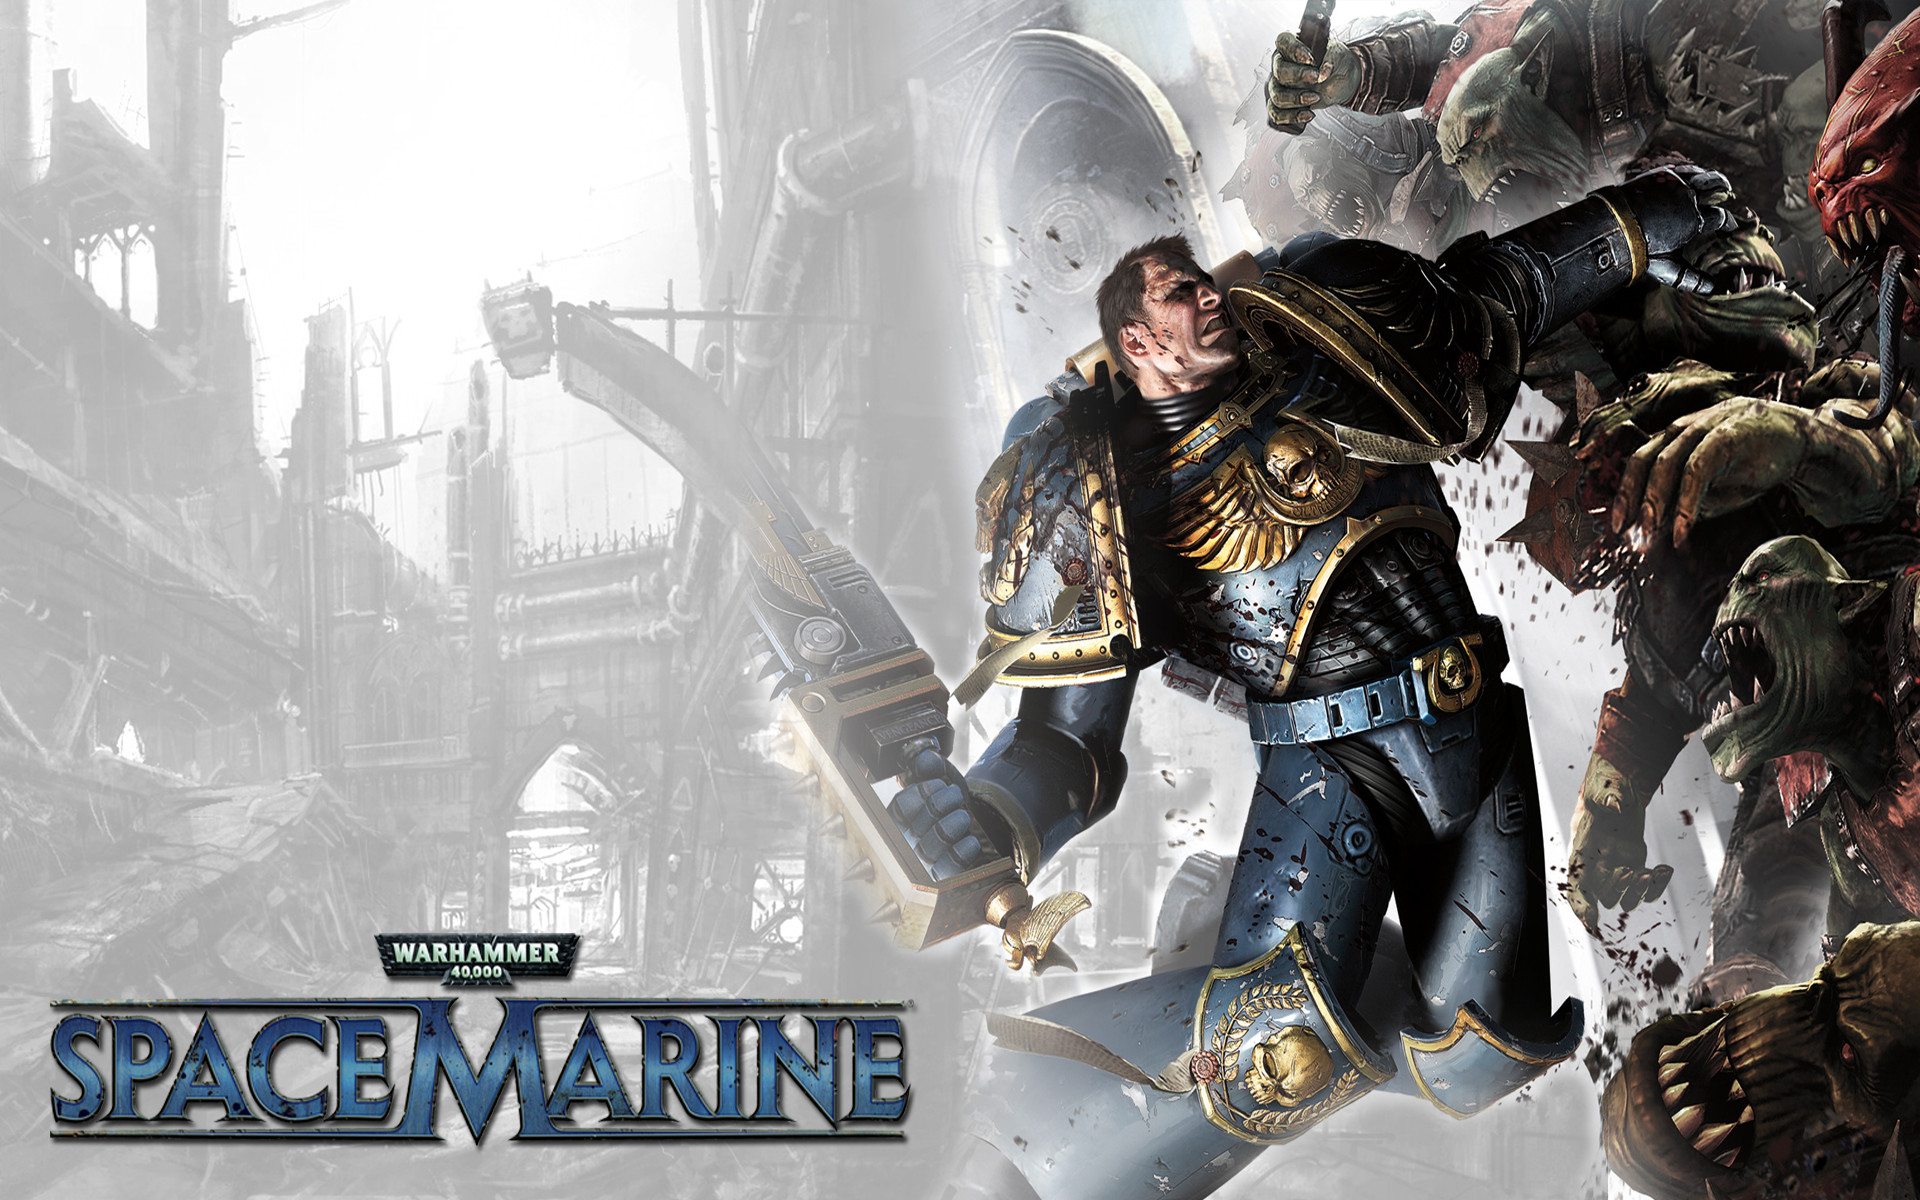 Res: 1920x1200, Video game Space marine